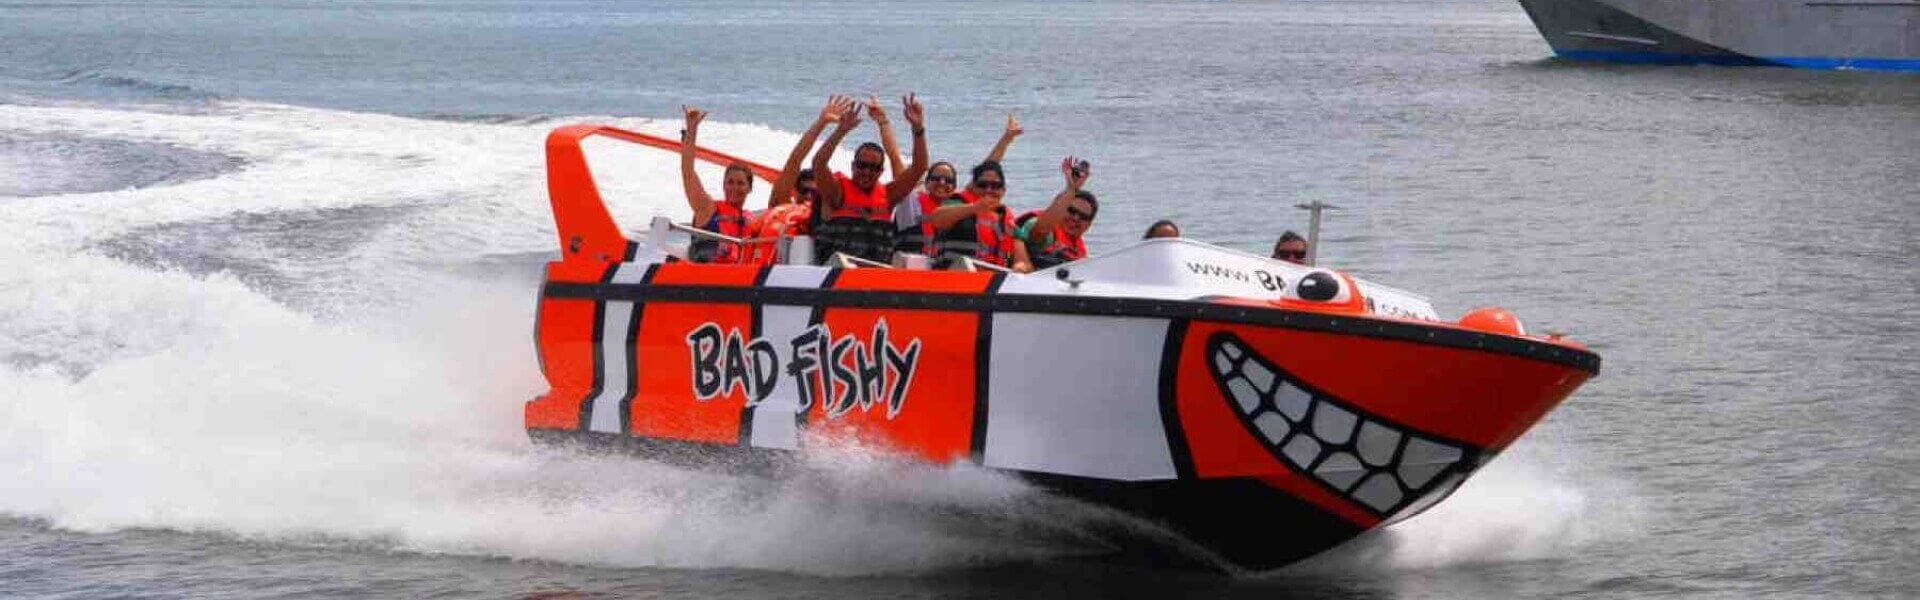 Bad Fishy Jet Boat Experience